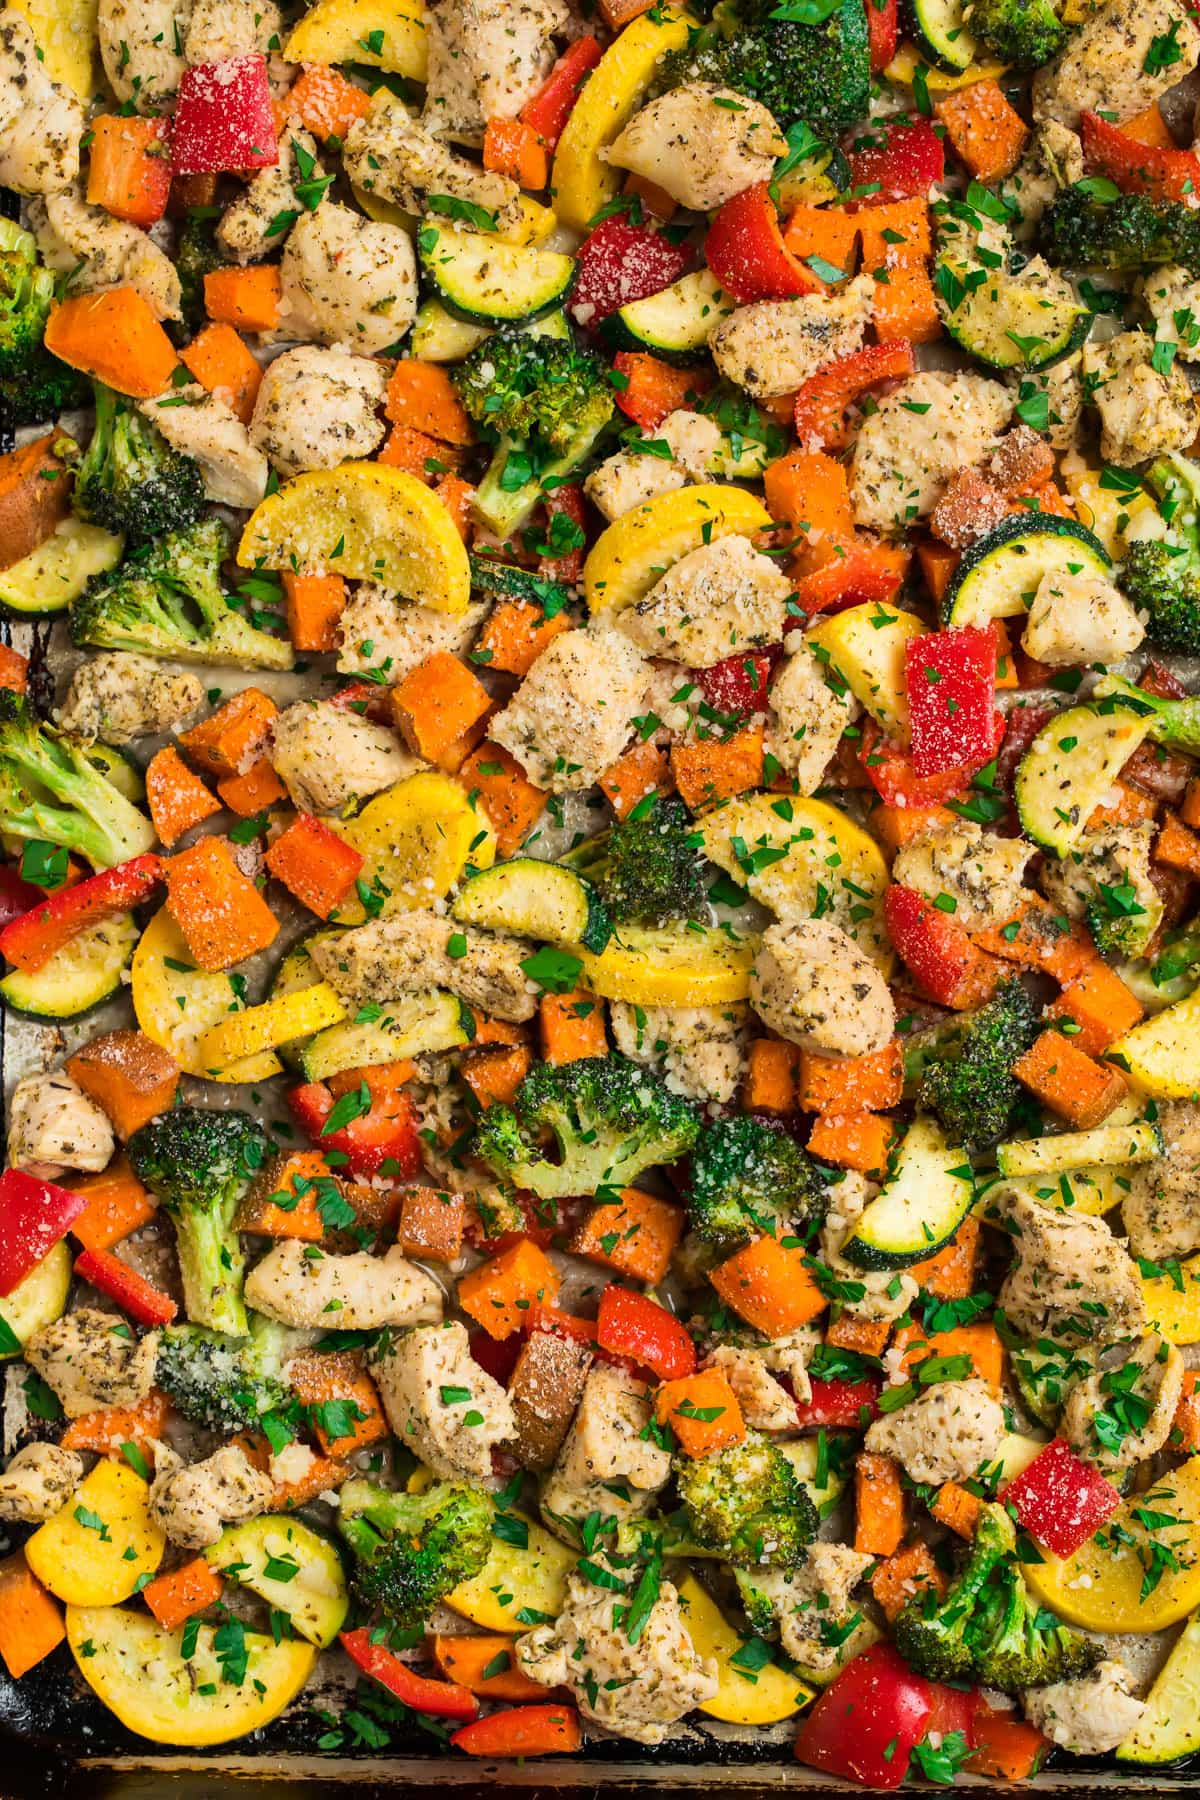 Chicken and vegetables on a baking sheet